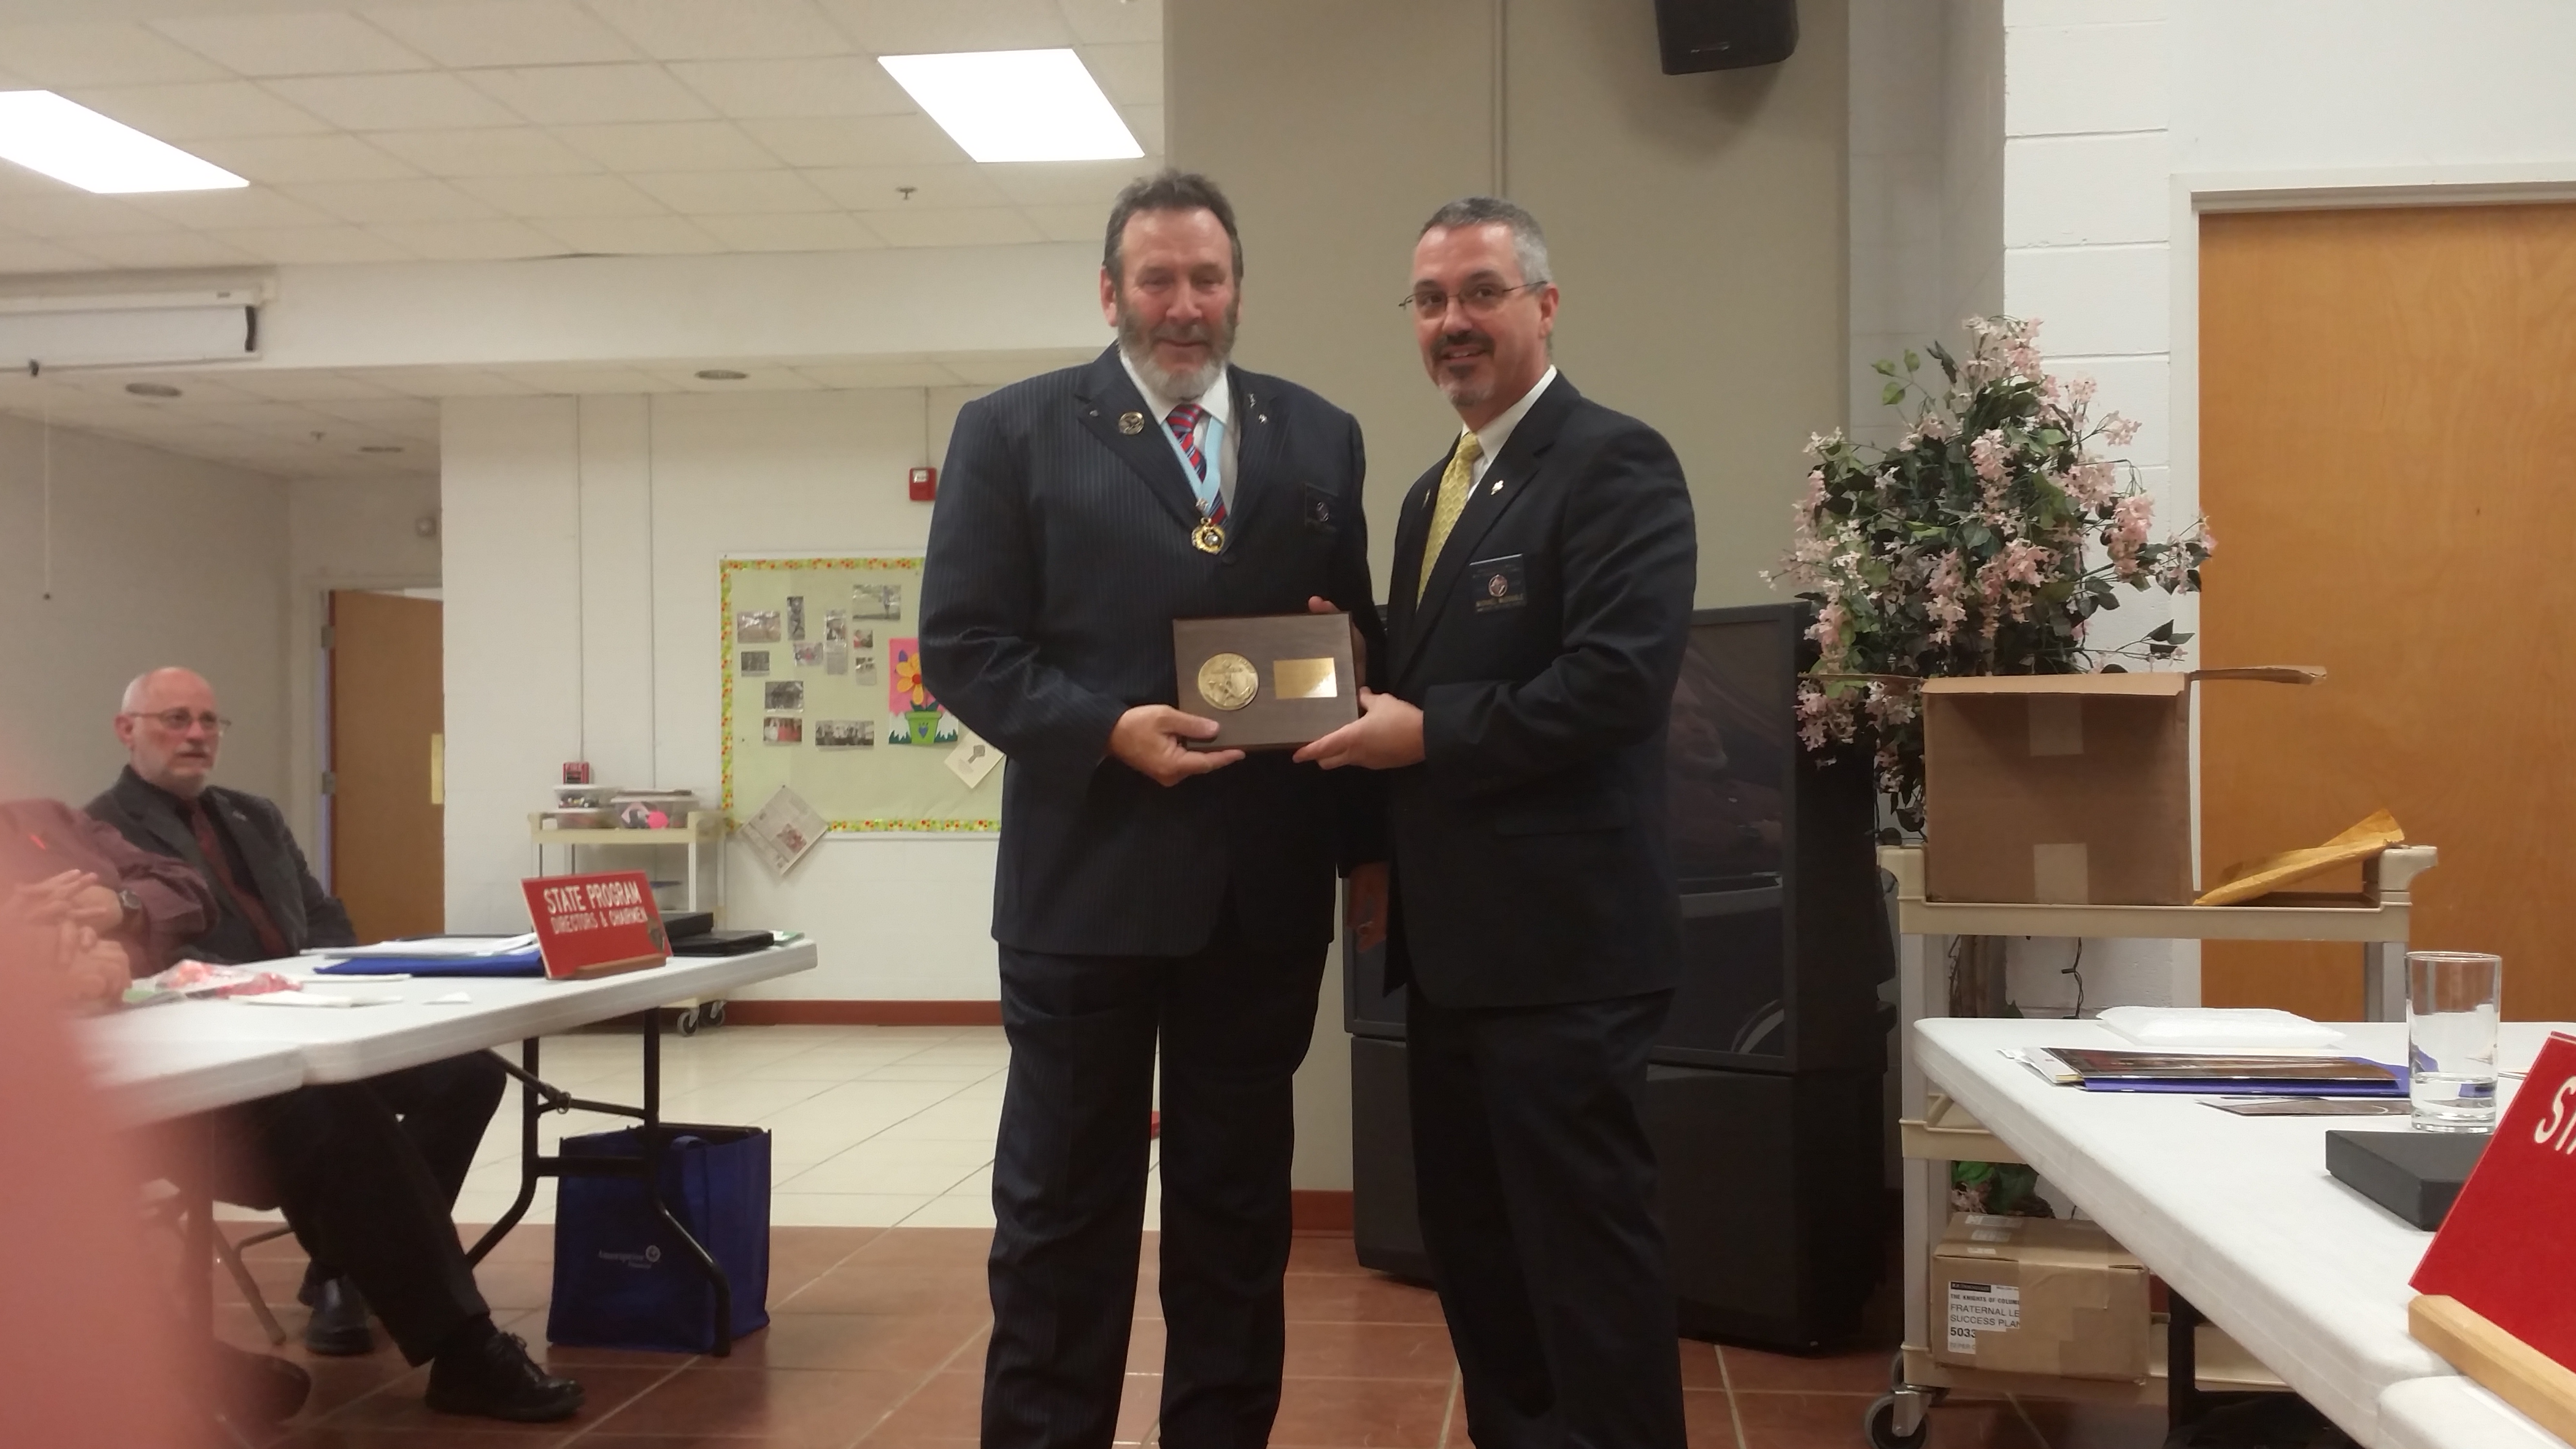 State Warden Mike Stanger  2015 WV Knights of Columbus District 6 Star District Award Presentation (